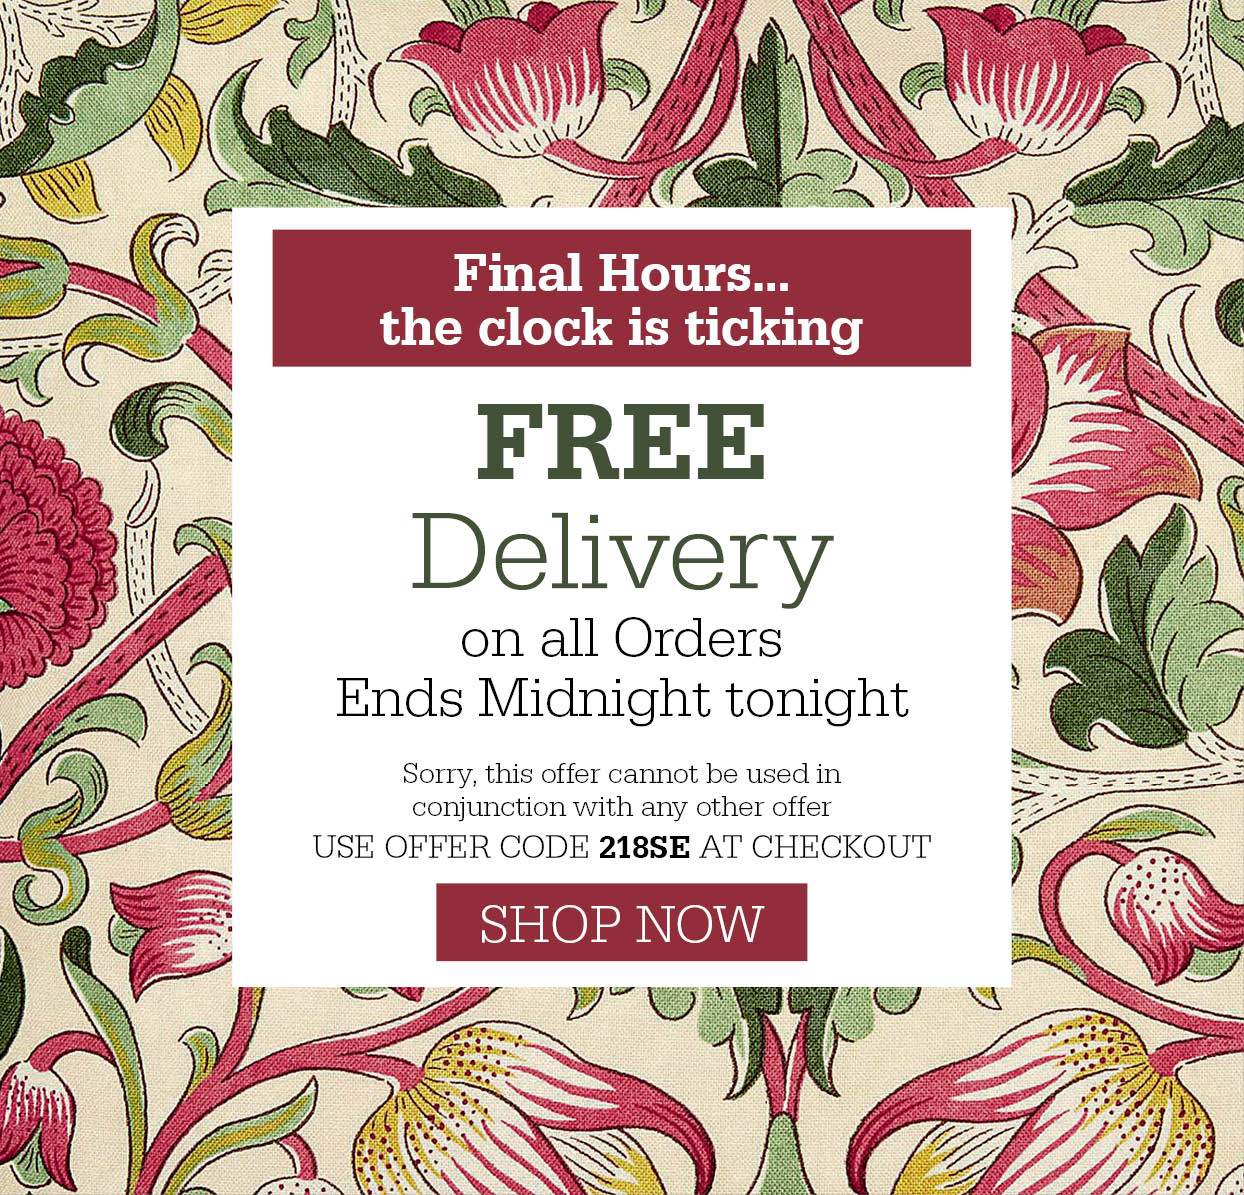 Free Delivery on all orders!